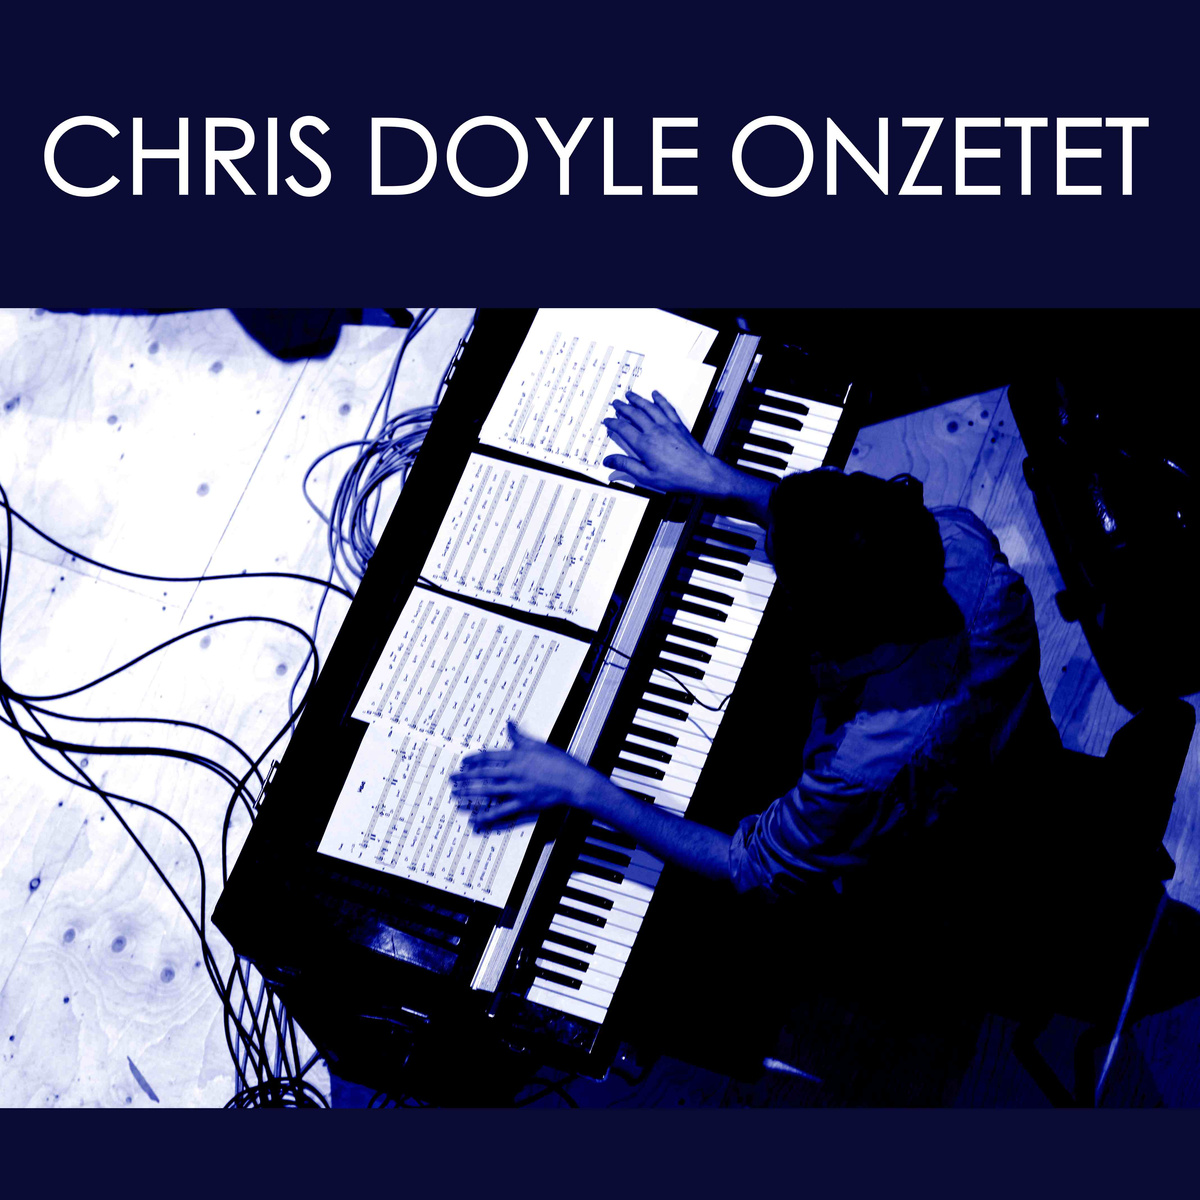 Chris Doyle Onzetet